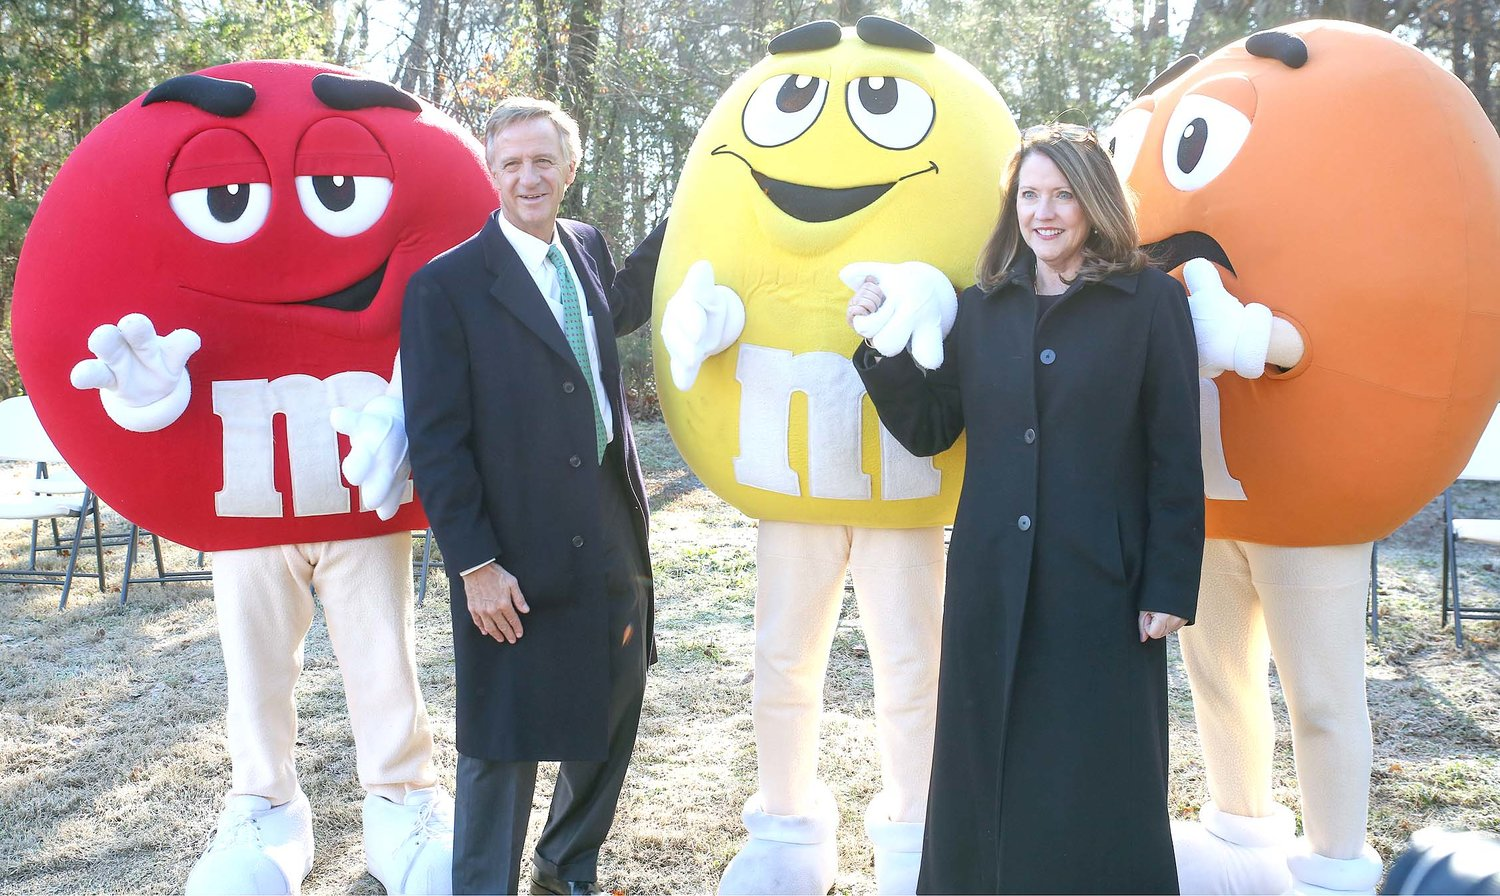 GOV. BILL HASLAM, left, and Tennessee's first lady, Crissy Haslam, right, pose for a photo with the M&M's character mascots at Tuesday's groundbreaking ceremony.